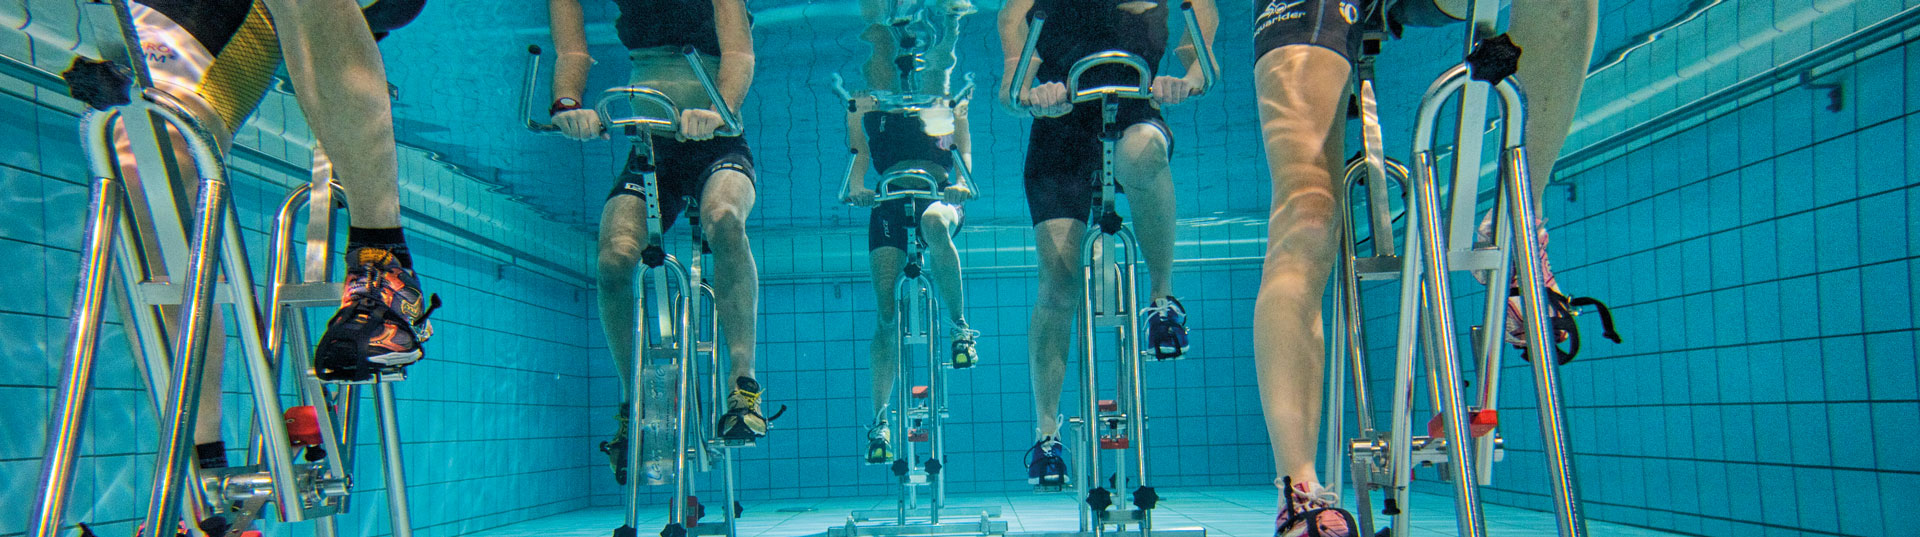 aquacycling_marburg_bg_2